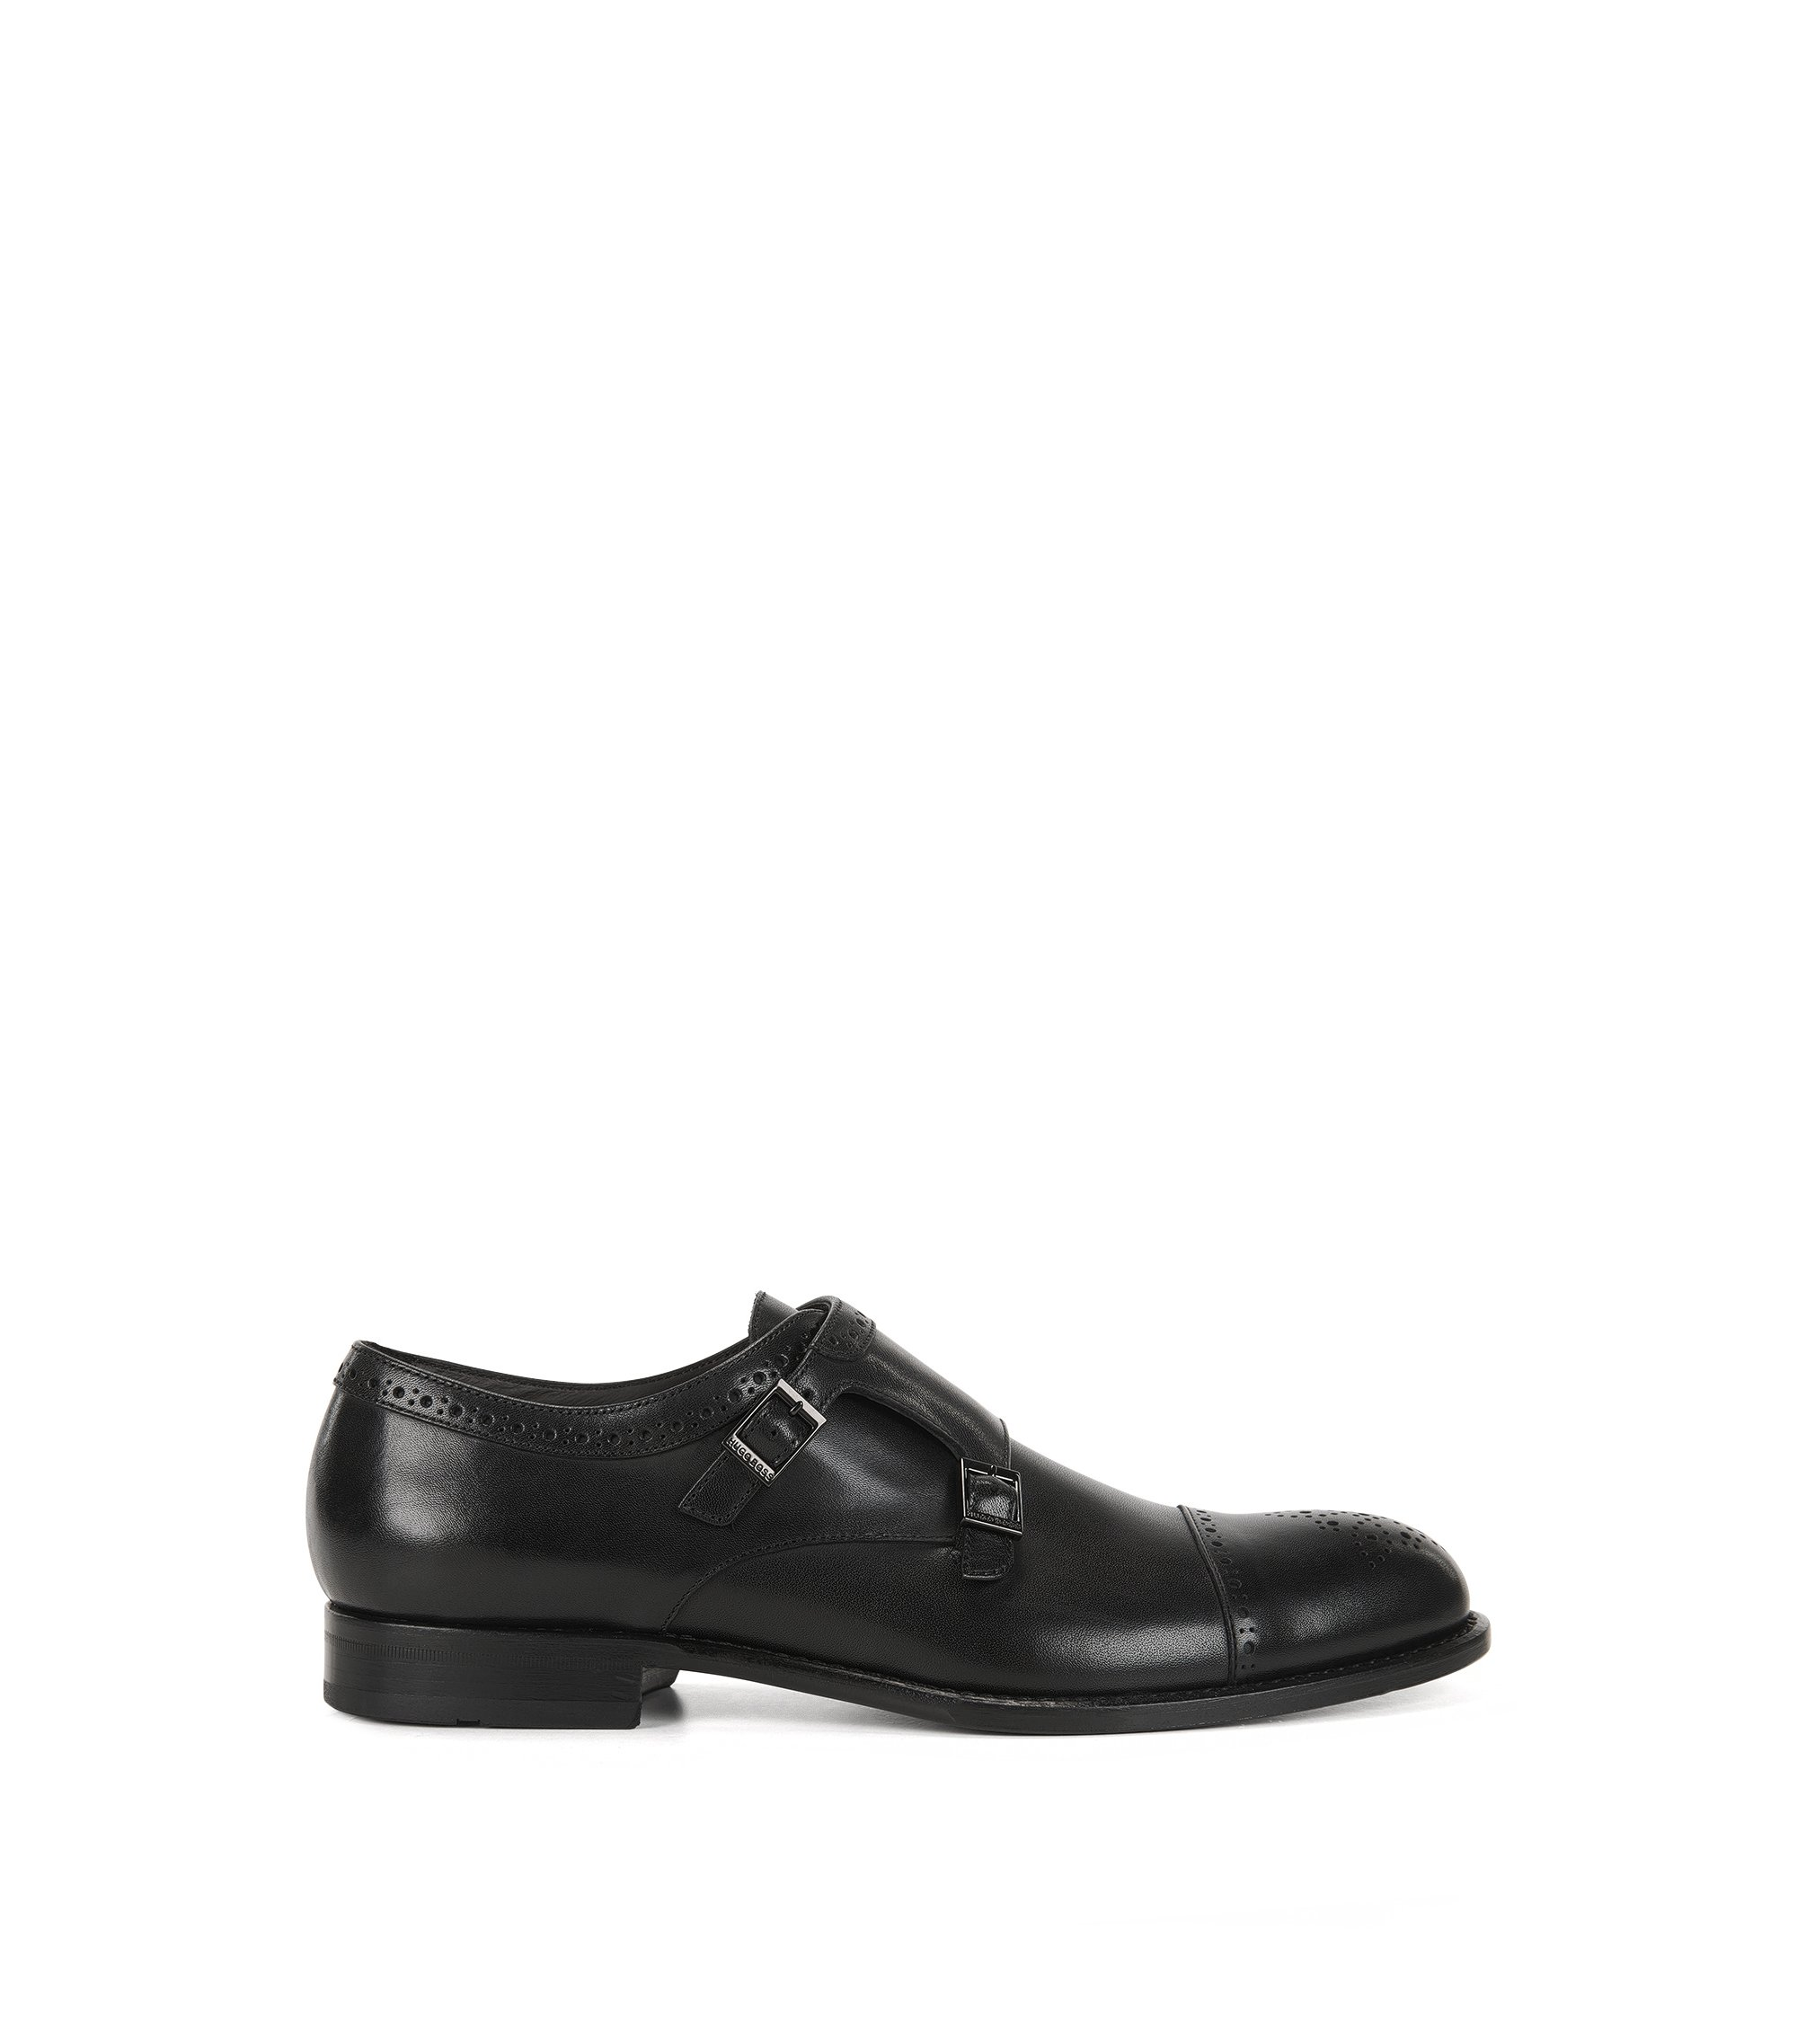 Leather monk shoes with brogue details, Black